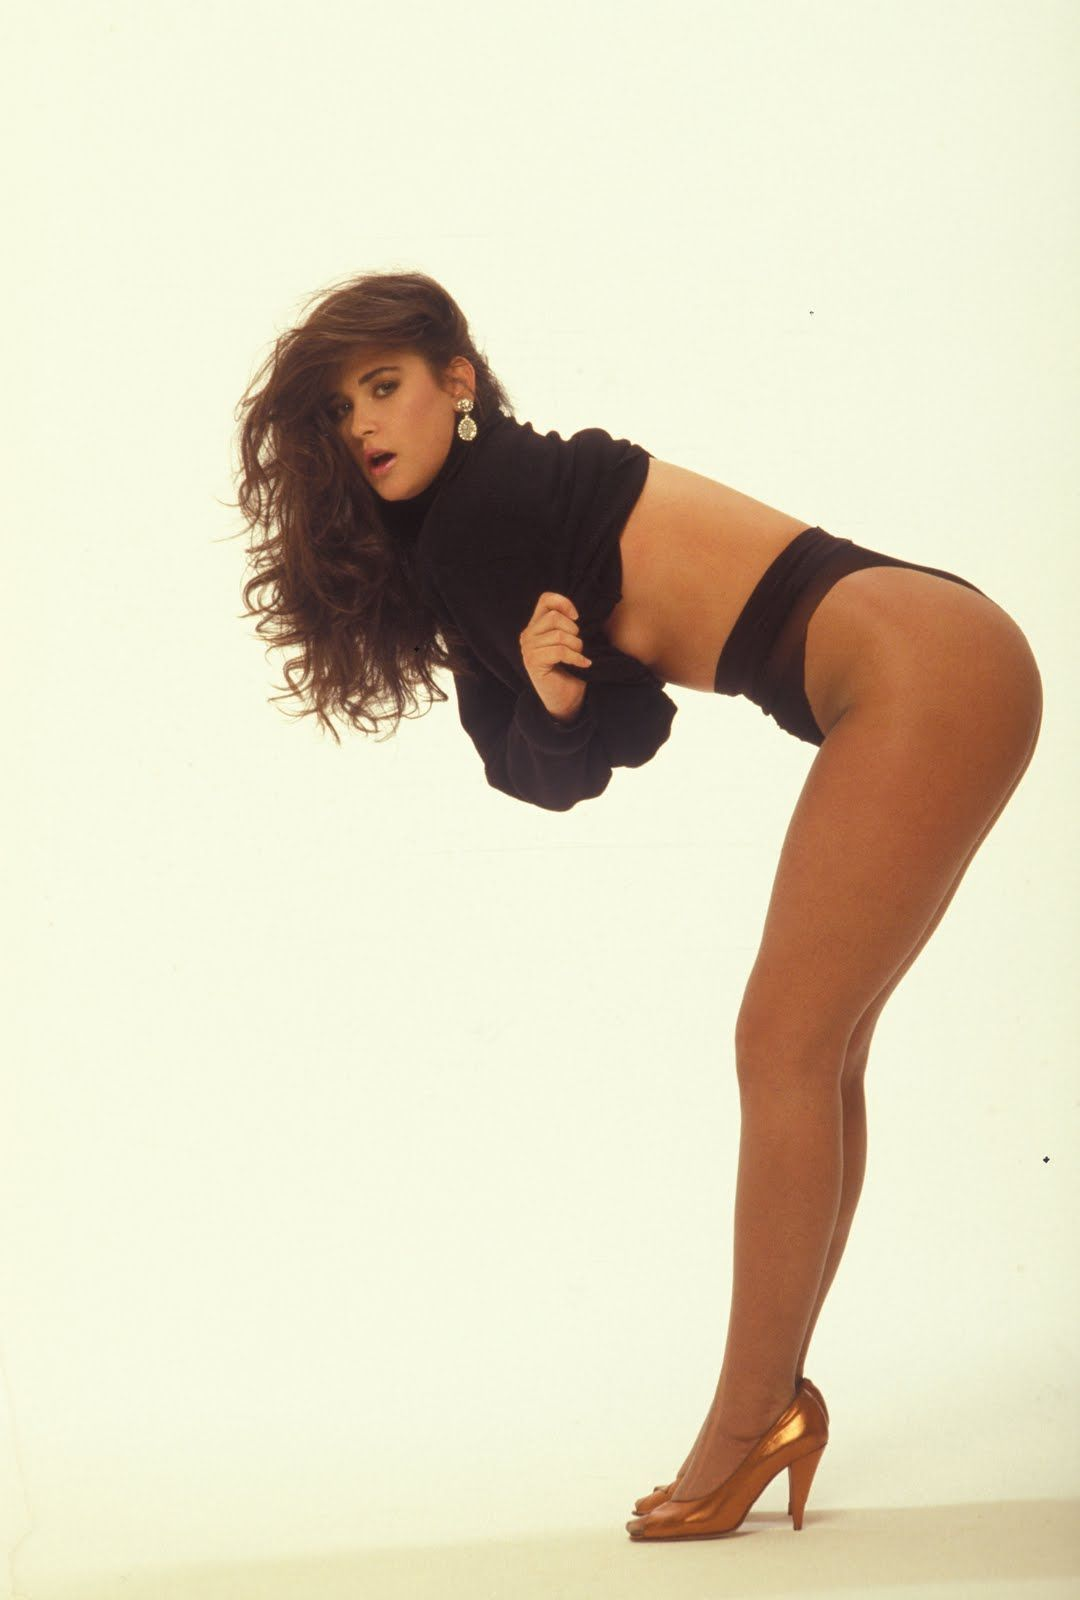 demi moore side boob and heels 90s babe